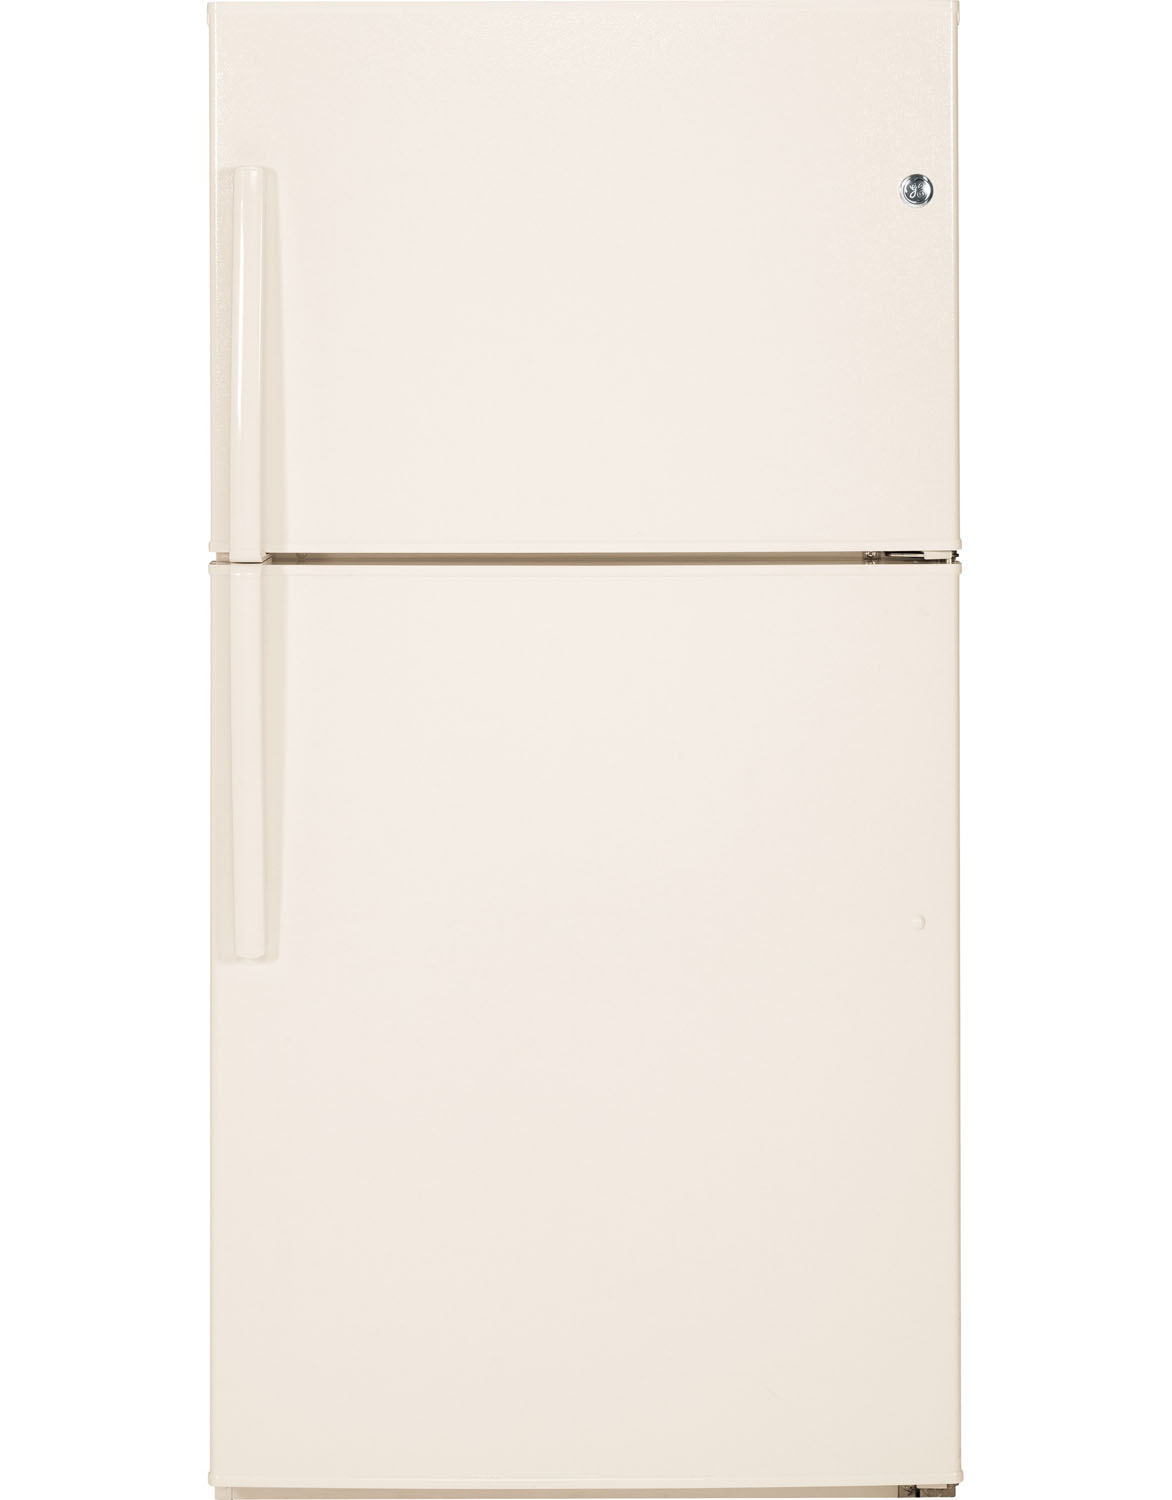 GE Bisque Top Freezer Refrigerator